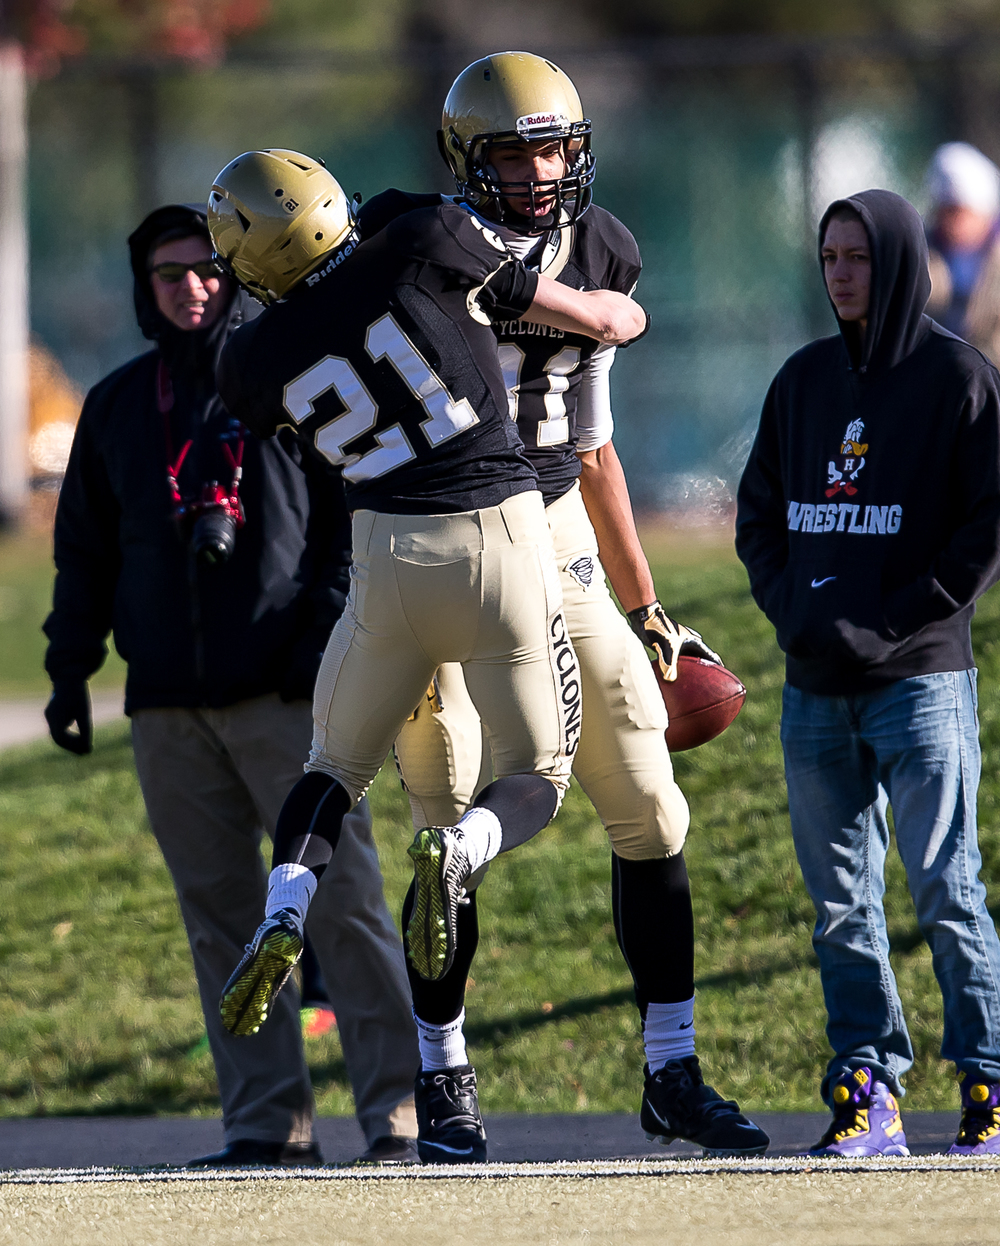 Sacred Heart-Griffin's Dylan Londrigan (21) celebrates Albert Okwuegbunam's (81) 54-yard touchdown catch against Marion in the first half during the second round of the Class 5A playoffs at the SHG Sports Complex, Saturday, Nov. 8, 2014, in Springfield, Ill. Justin L. Fowler/The State Journal-Register